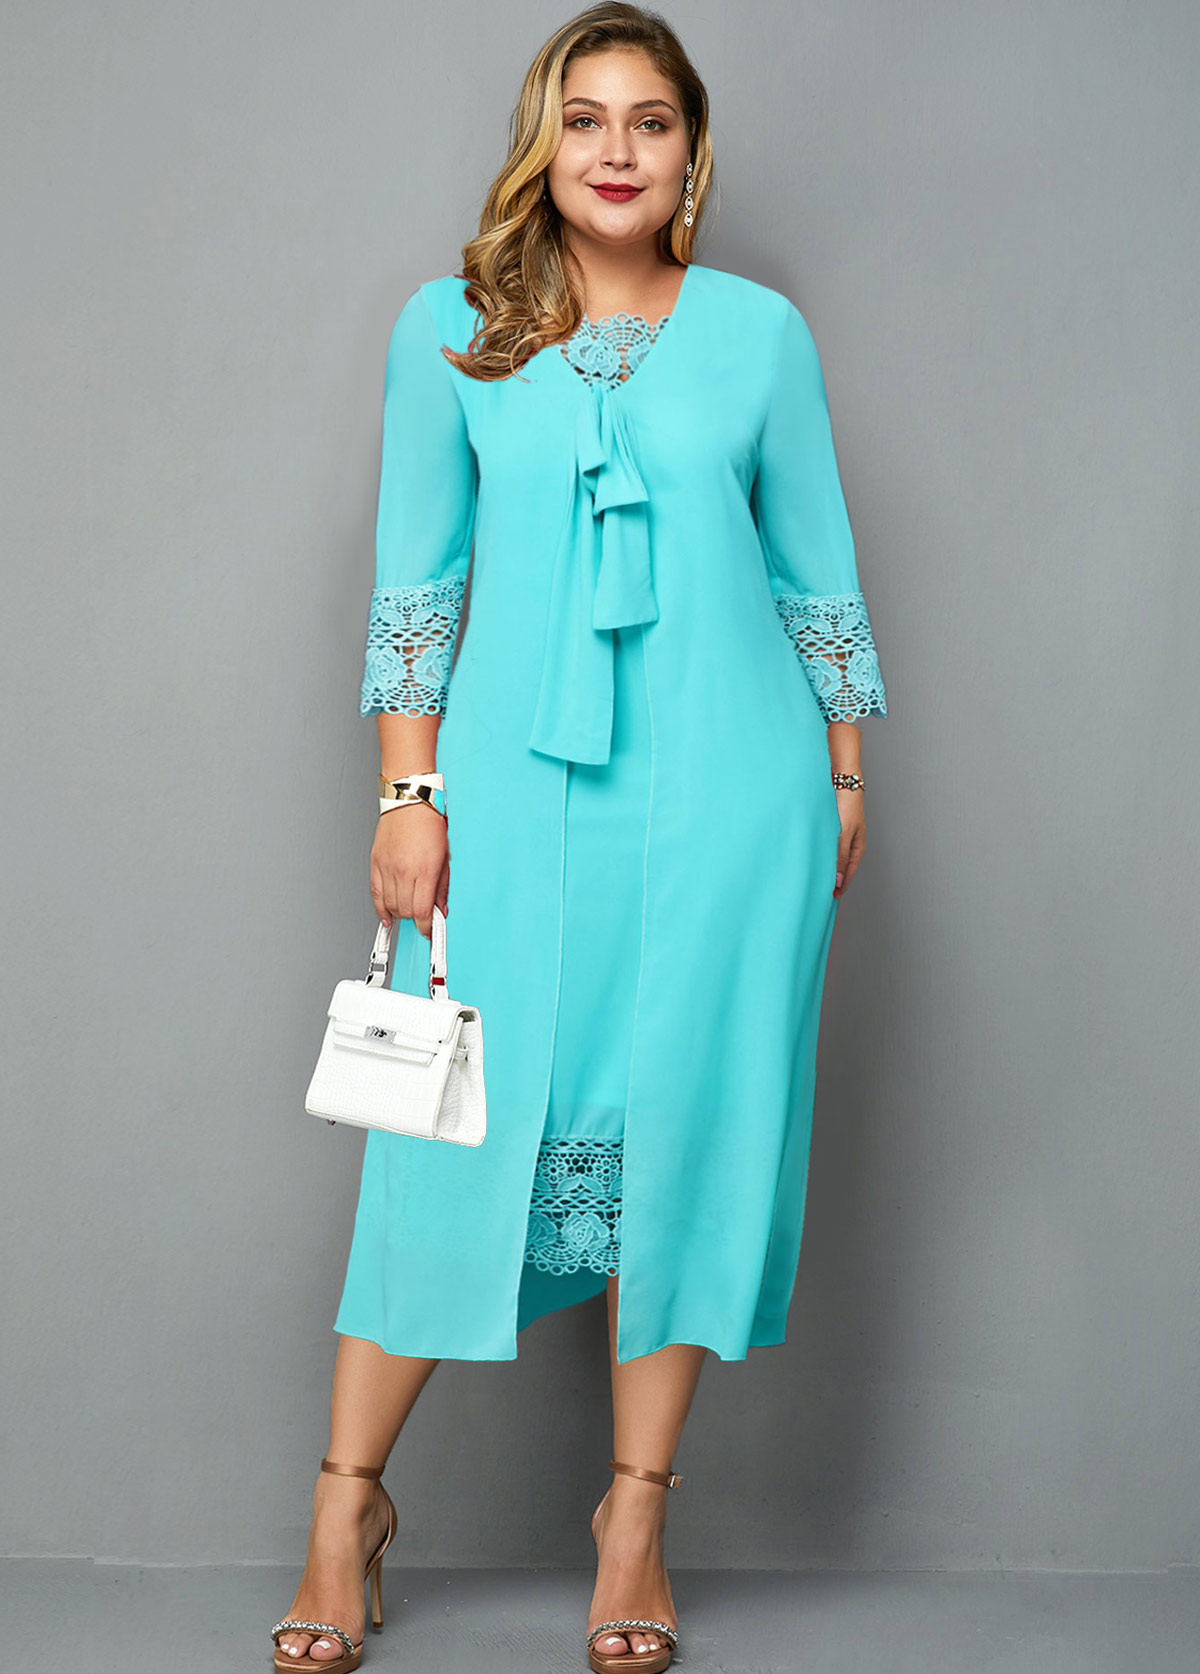 Lace Panel Knot Detail Plus Size Dress